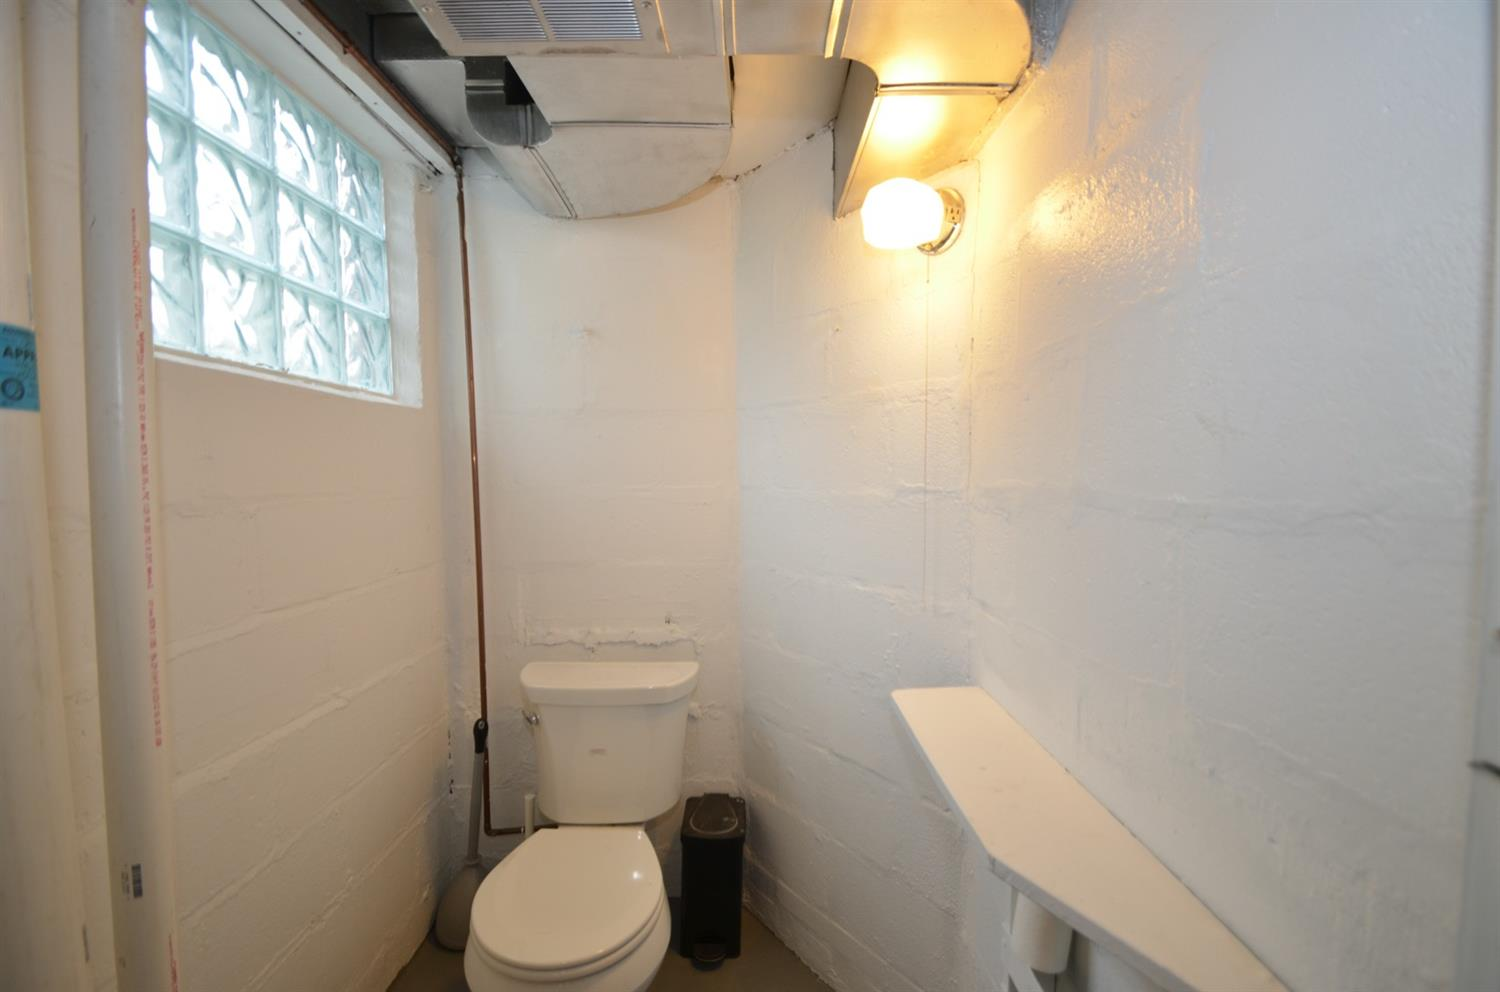 Water closet in separate room, also in the basement.  There are a total of 2.5 baths in the house.